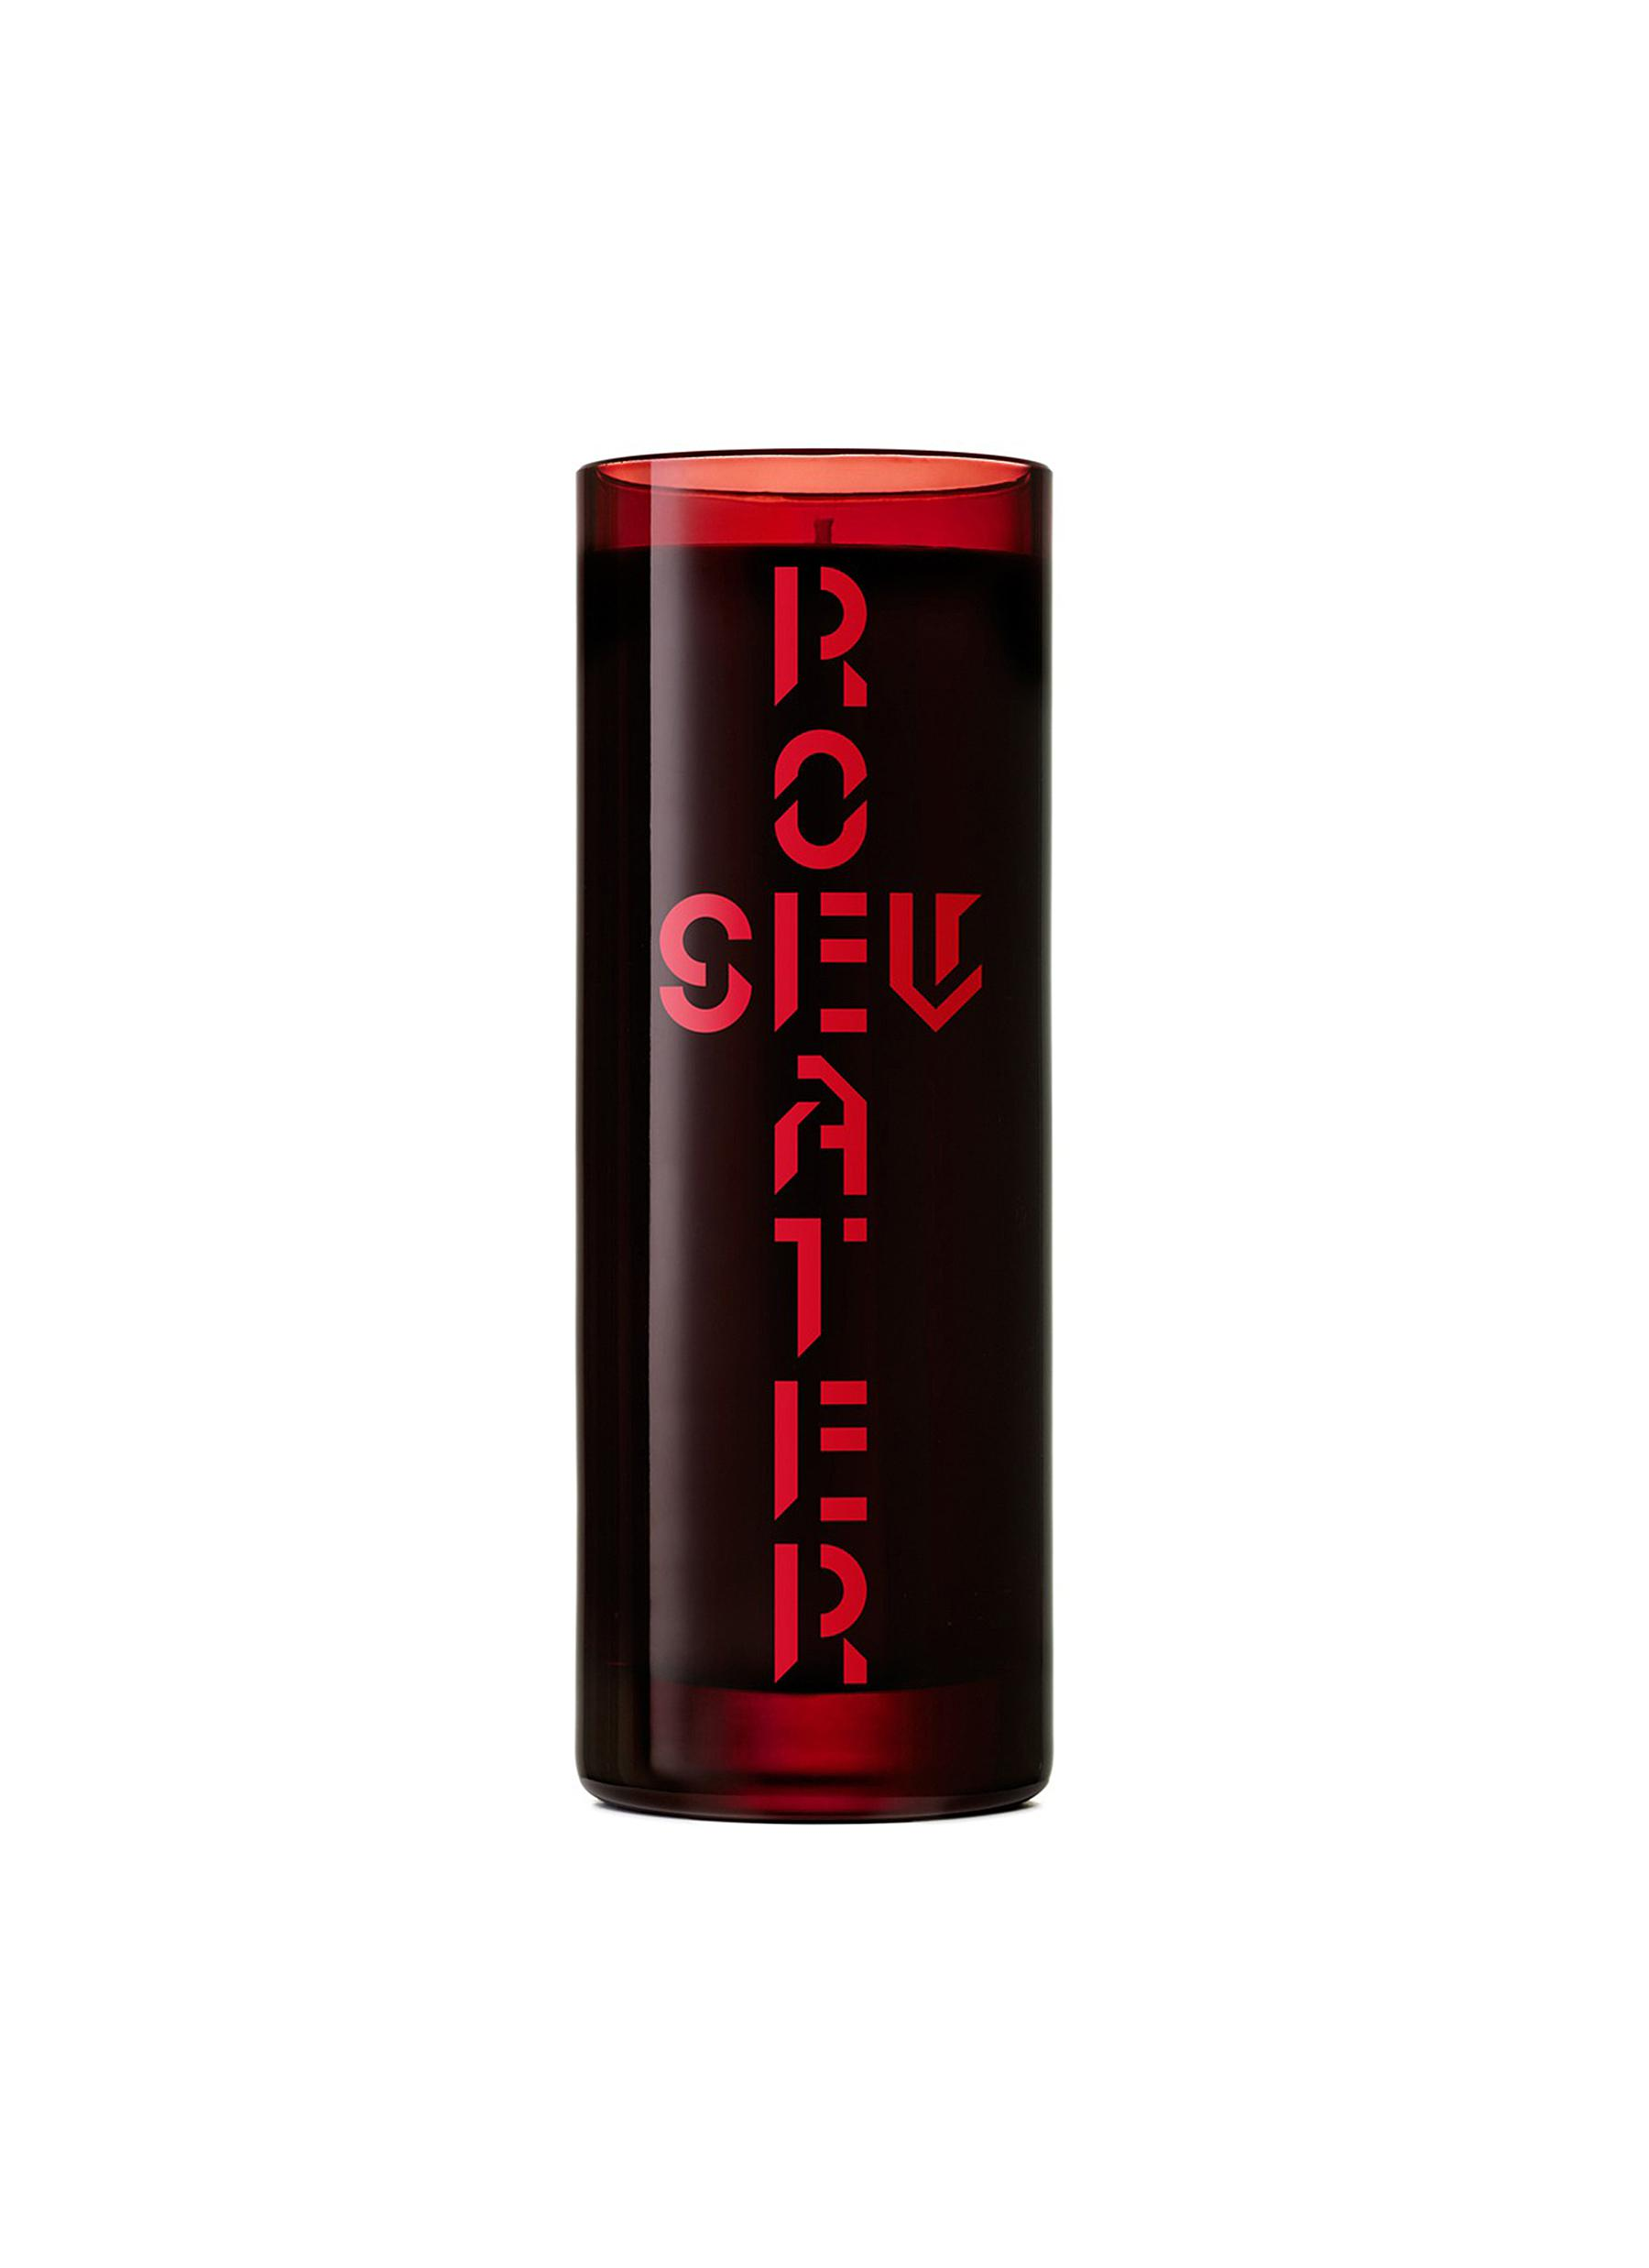 Saints Rosewater fragranced candle 400g by BYREDO